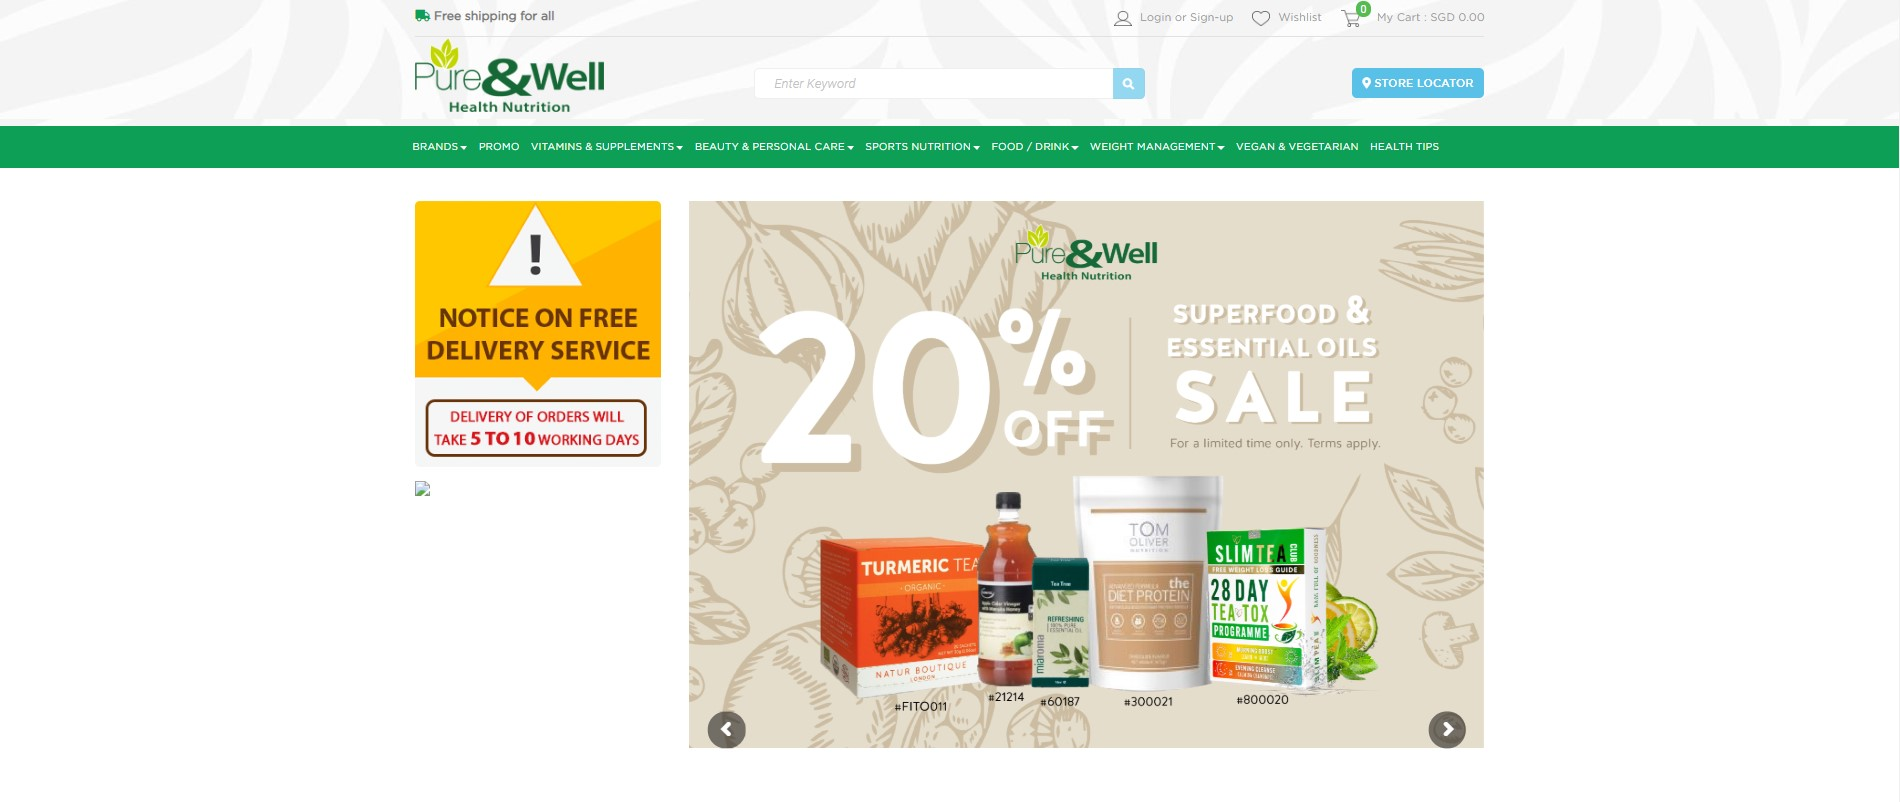 Pure & Well Health Nutrition's Homepage